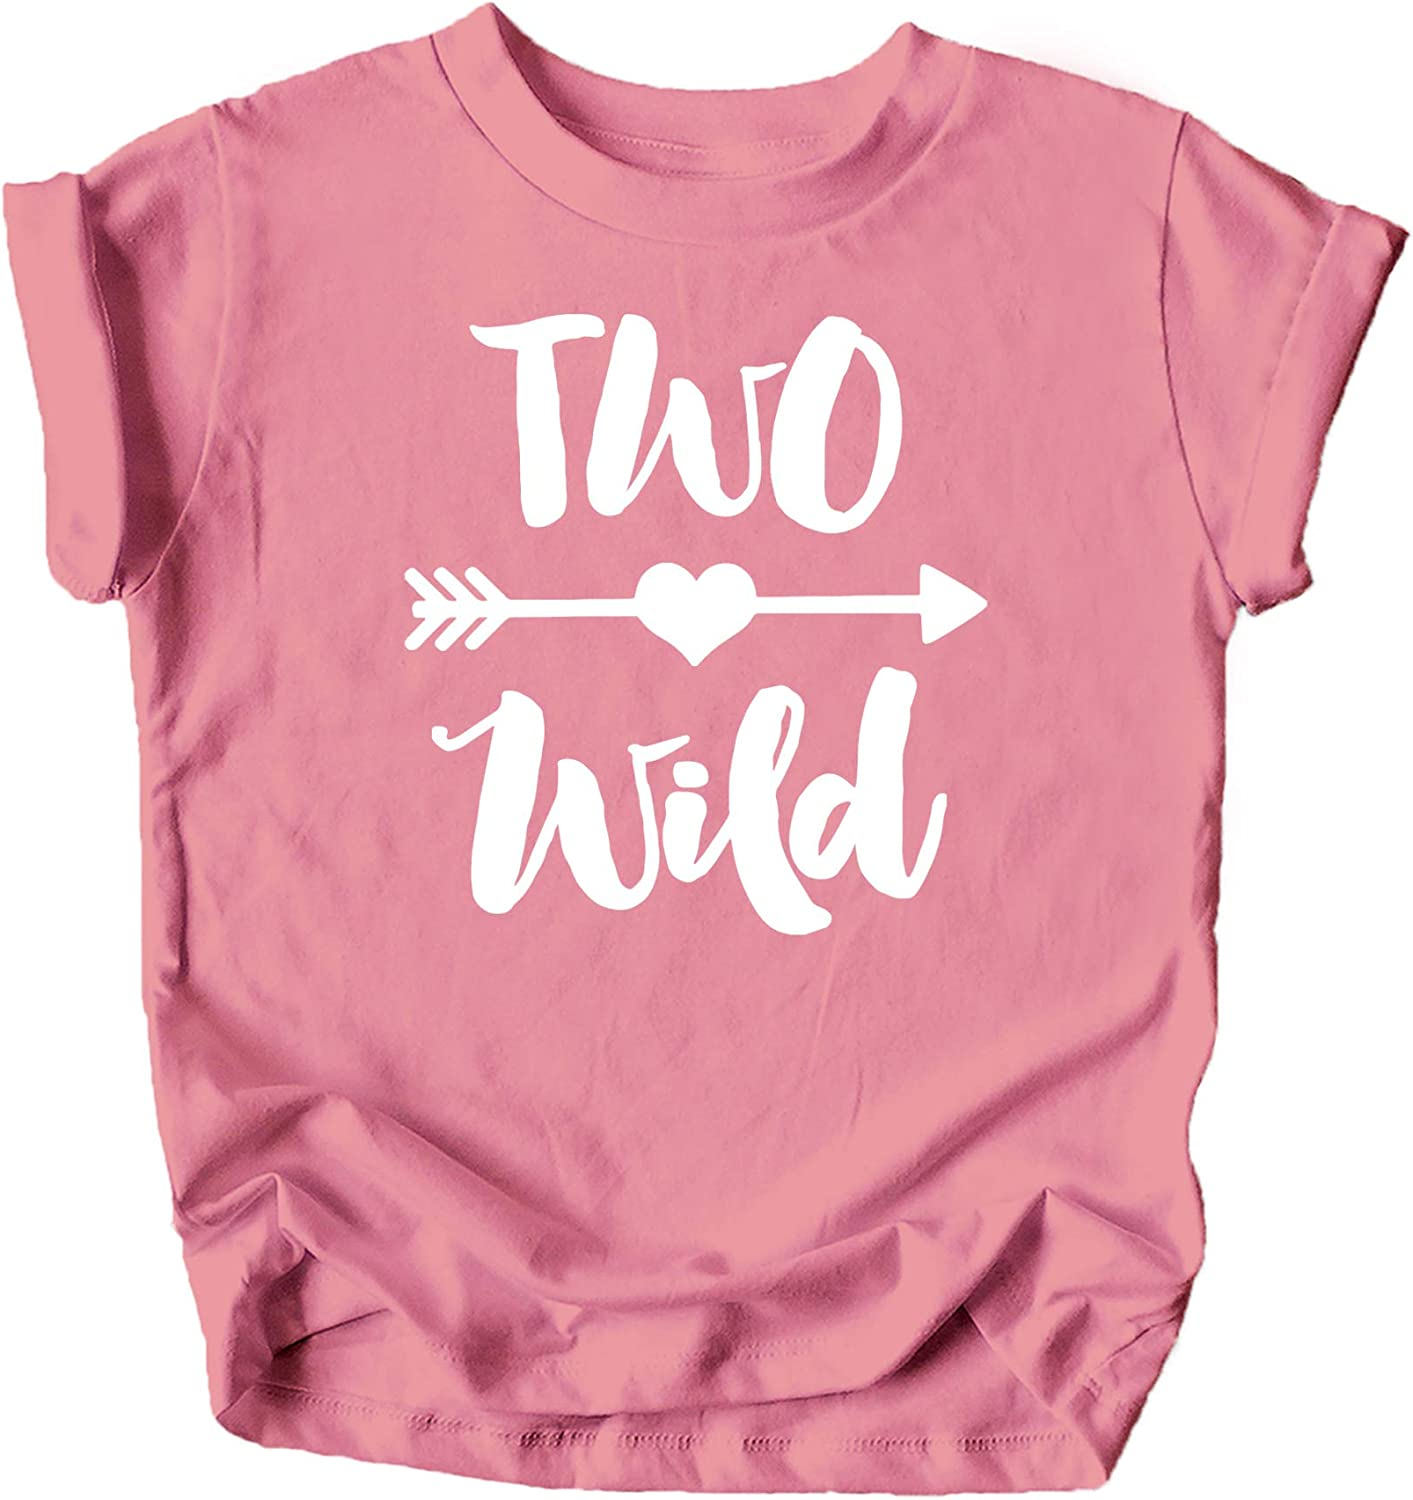 Olive Loves Apple Two Wild 2nd Birthday Girls Shirt for Toddler Girls Second Birthday Outfit